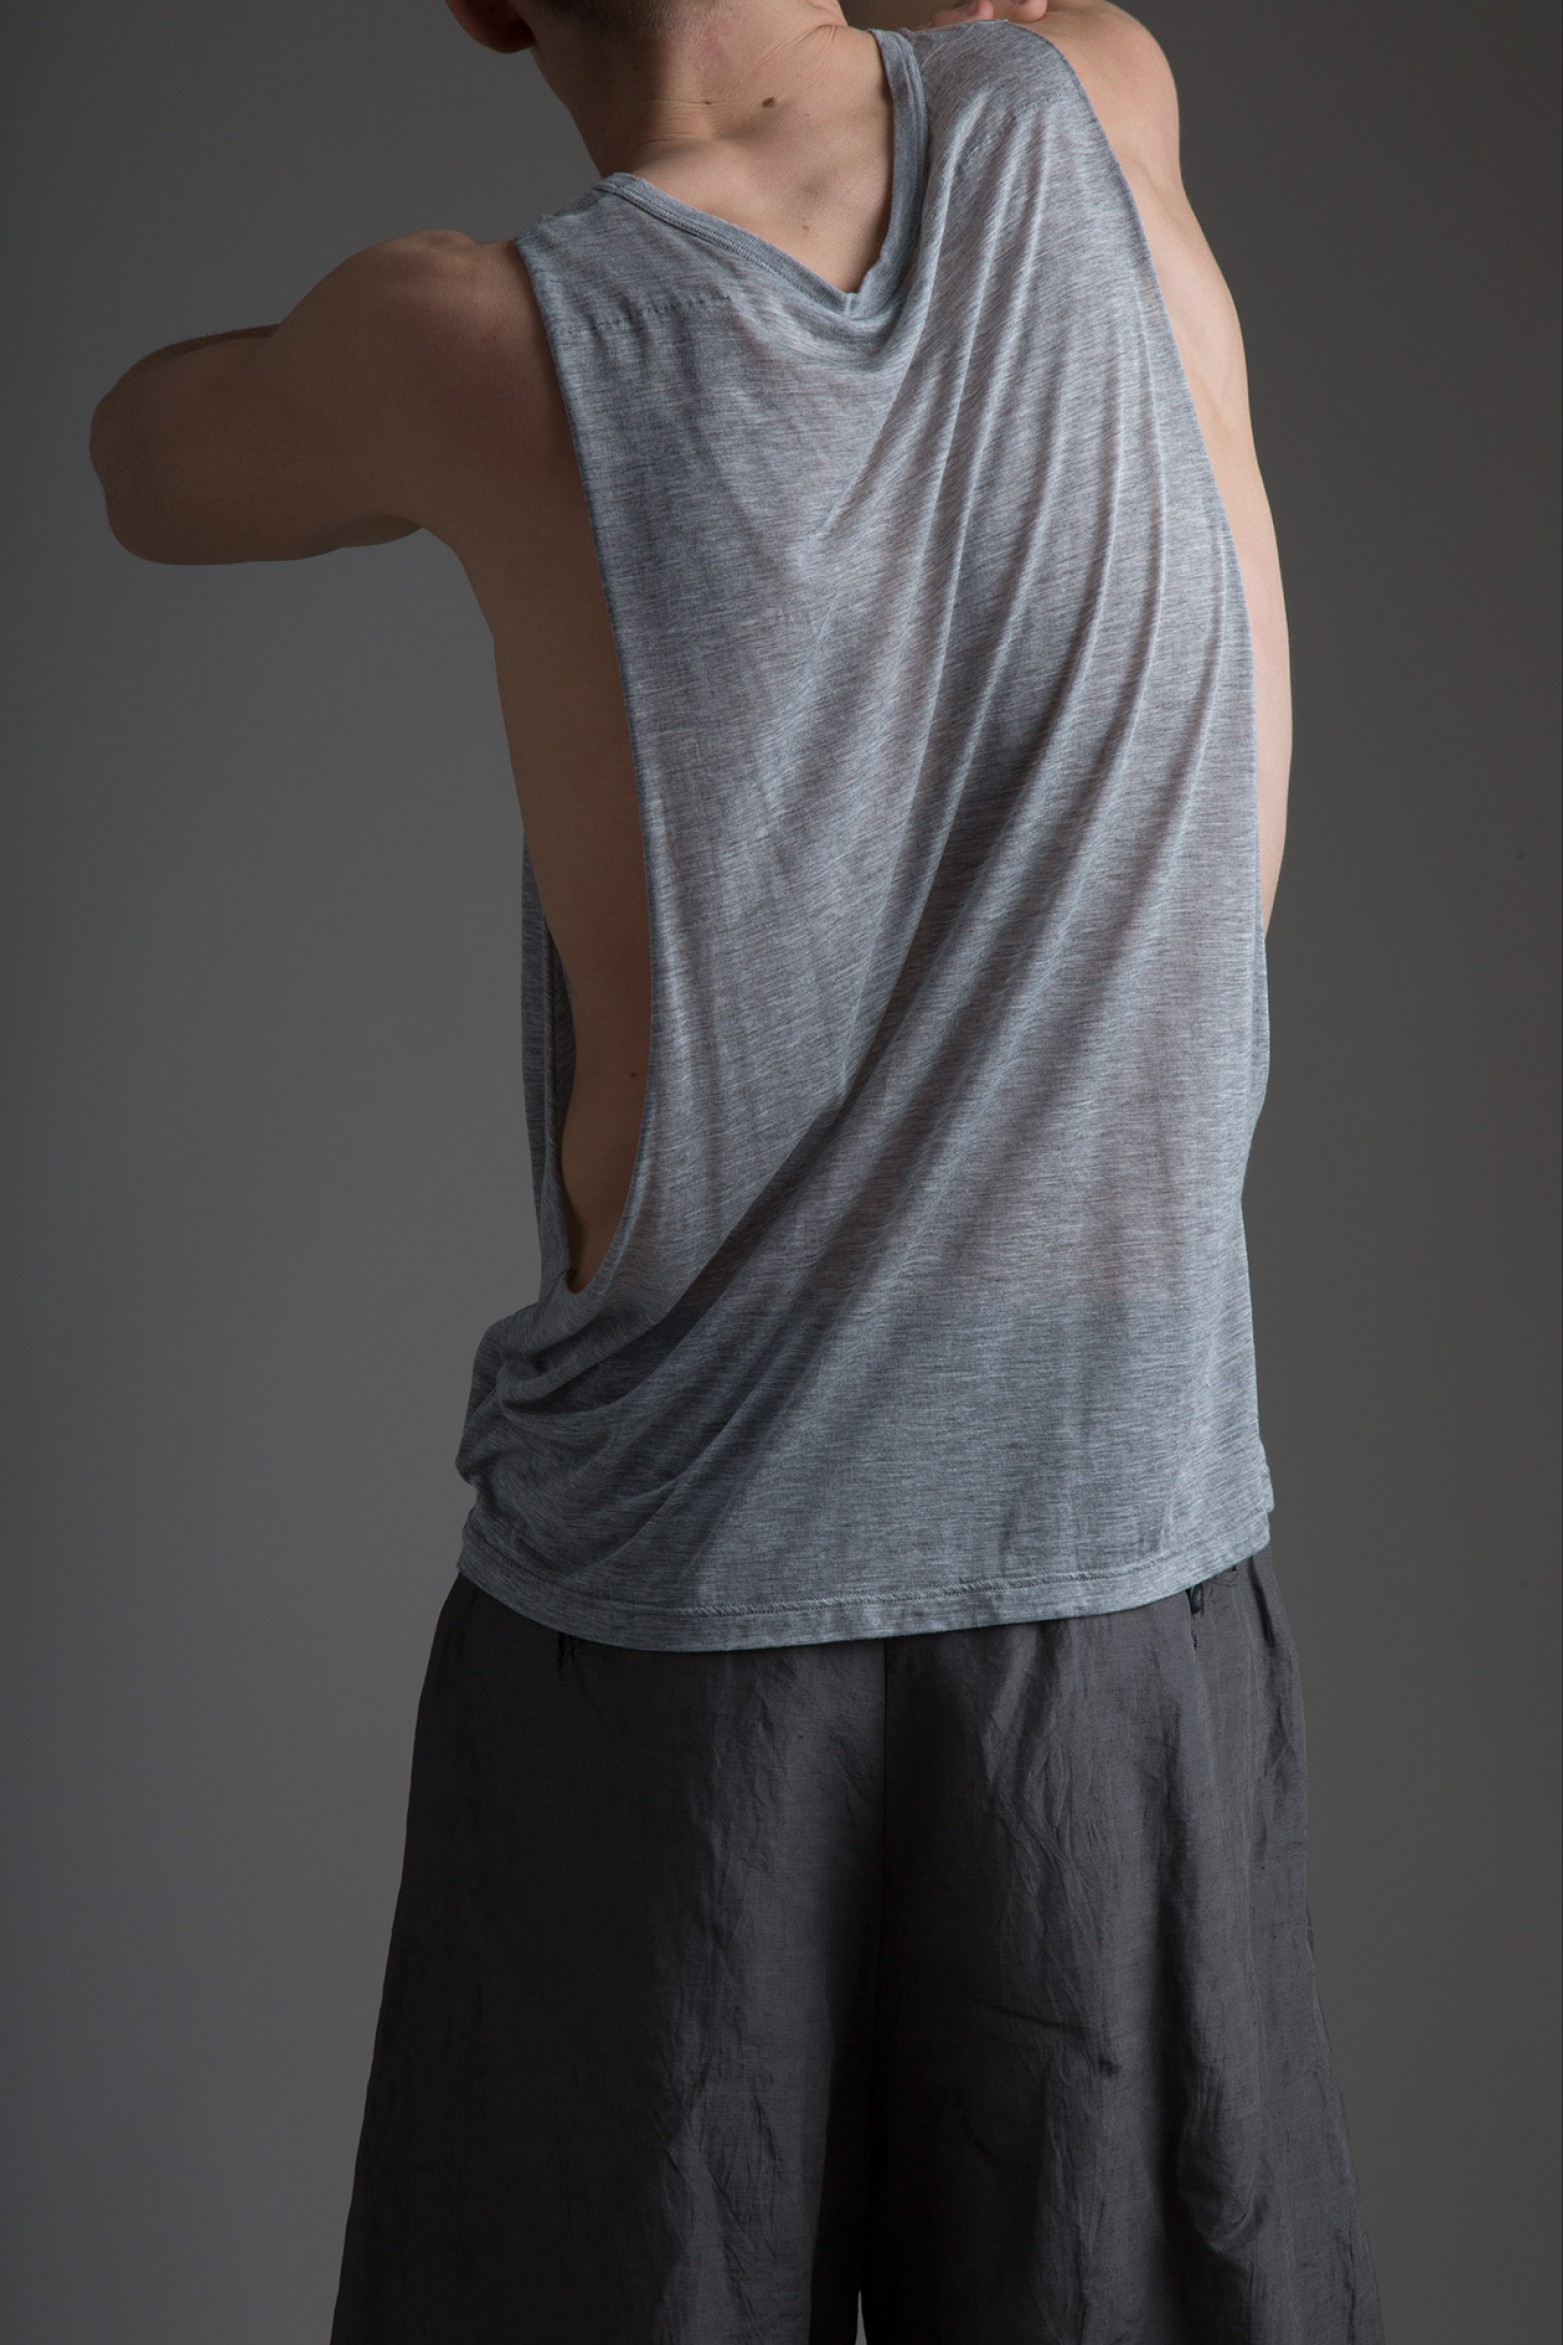 Vintage Dior Homme Muscle Tank